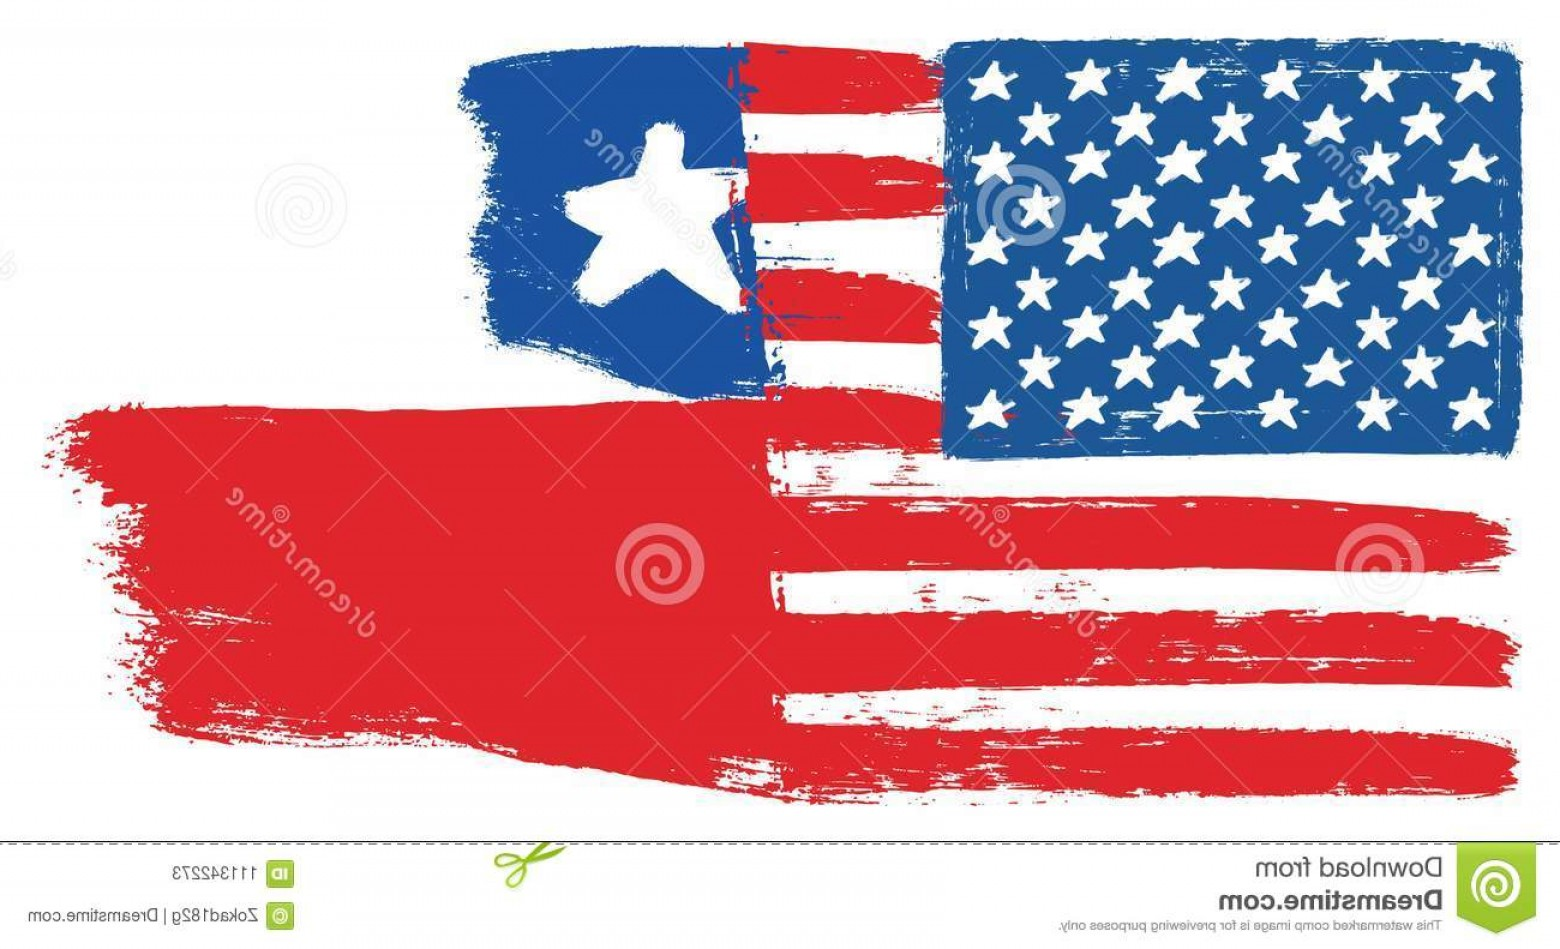 US Flag Vector Lines: United States America Flag Chile Flag Vector Hand Painted Rounded Brush Image Vector Illustration Can Be Image